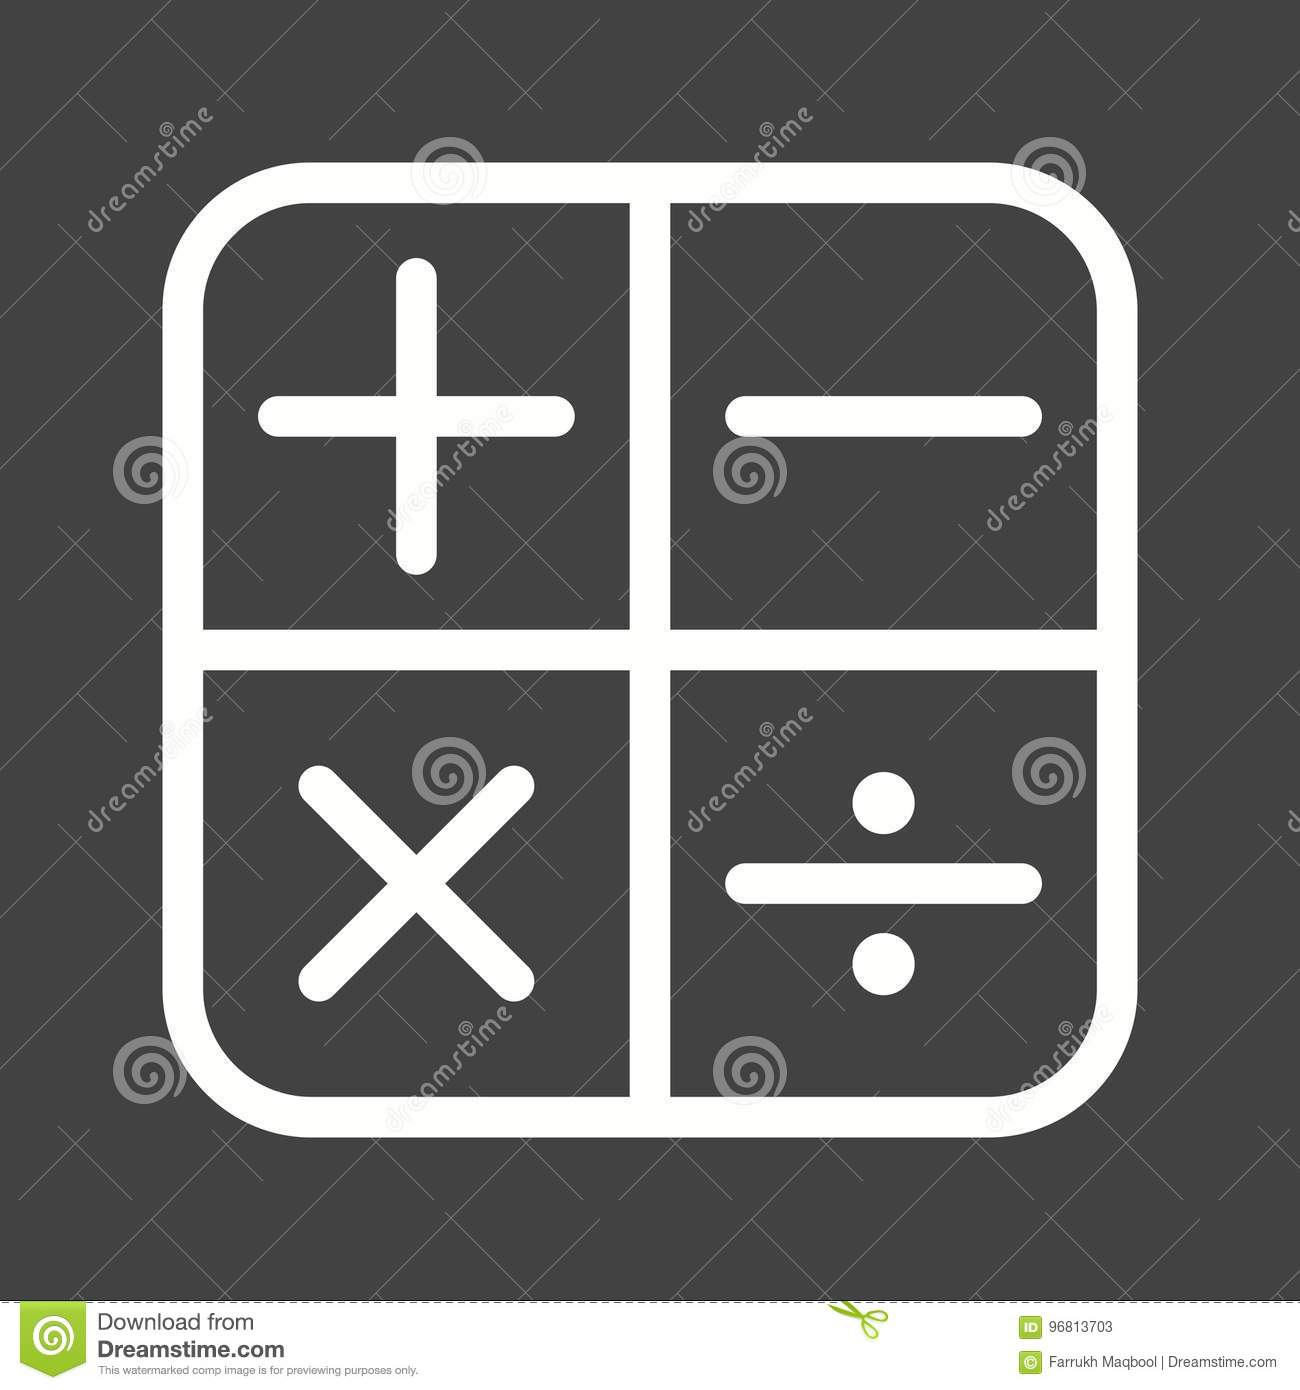 Math symbols i stock illustration image of signs concept 96813703 math symbols i buycottarizona